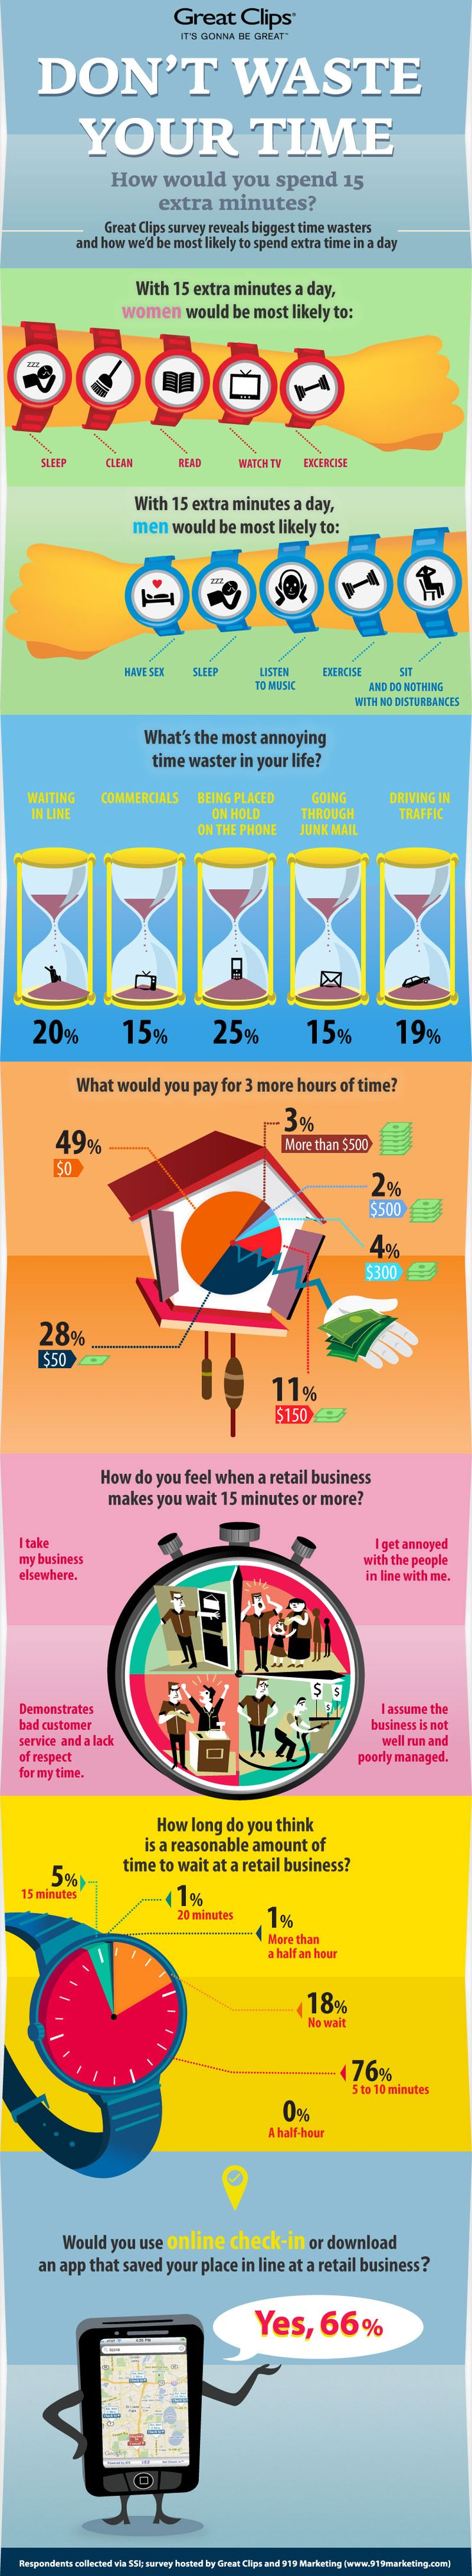 How would you spend 15 extra minutes? #infographic